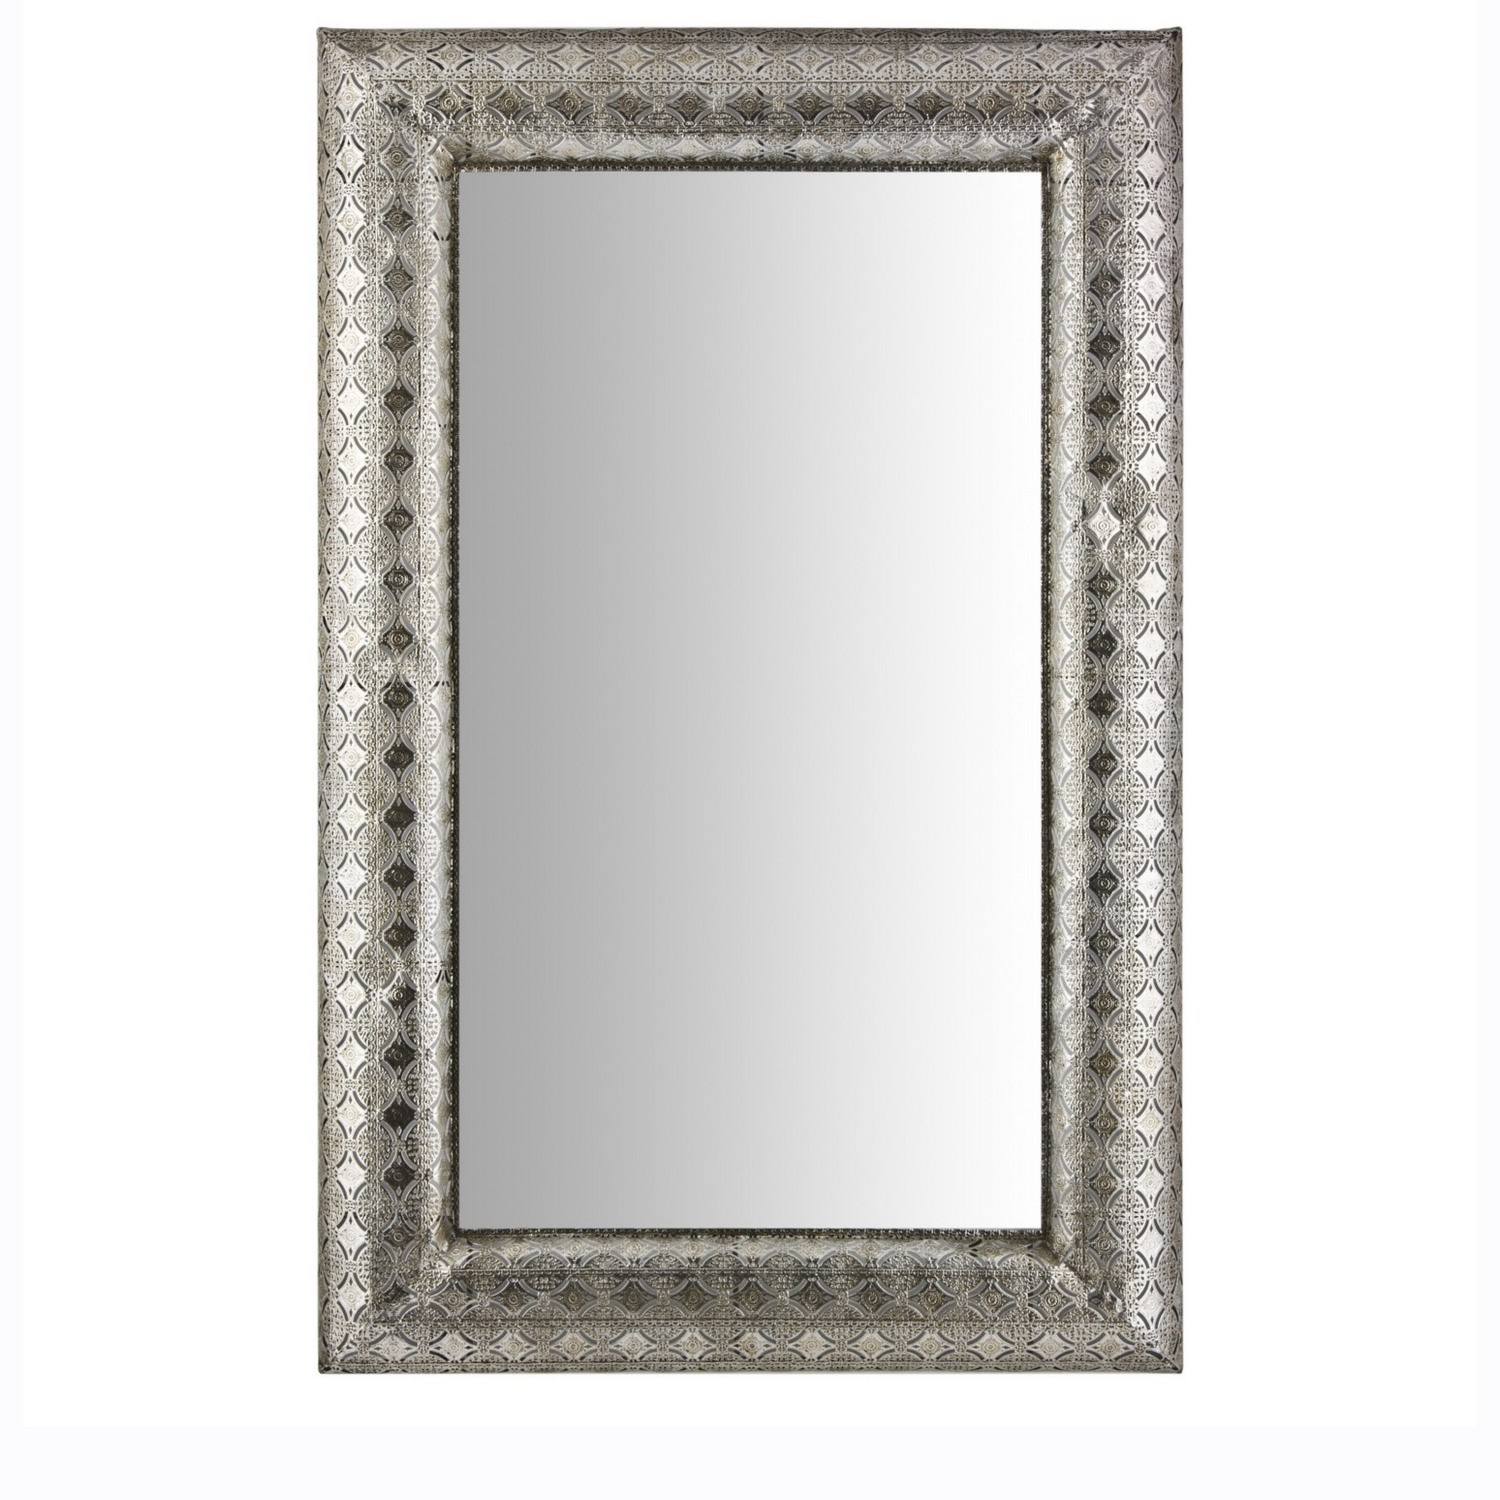 Mirrors | The Range with regard to Rectangle Ornate Geometric Wall Mirrors (Image 14 of 30)